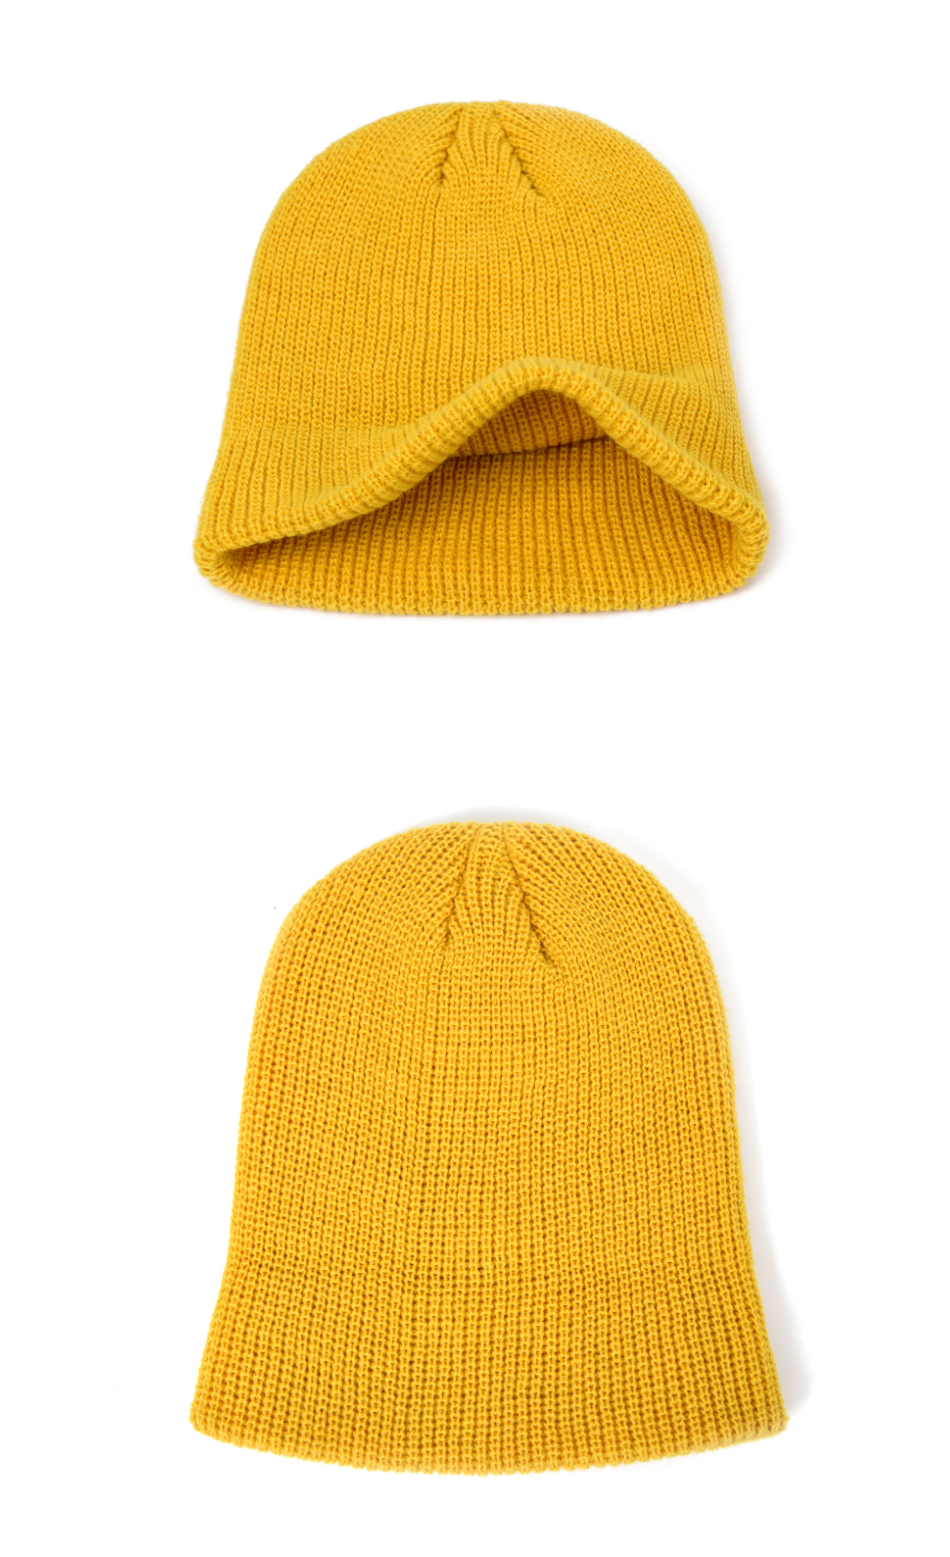 2021 Fashion Unisex Winter Hat Men Cuffed Cib Knit Hat Short Melon Ski Beanies Autumn Winter Solid Color Casual Beanie Hat 20